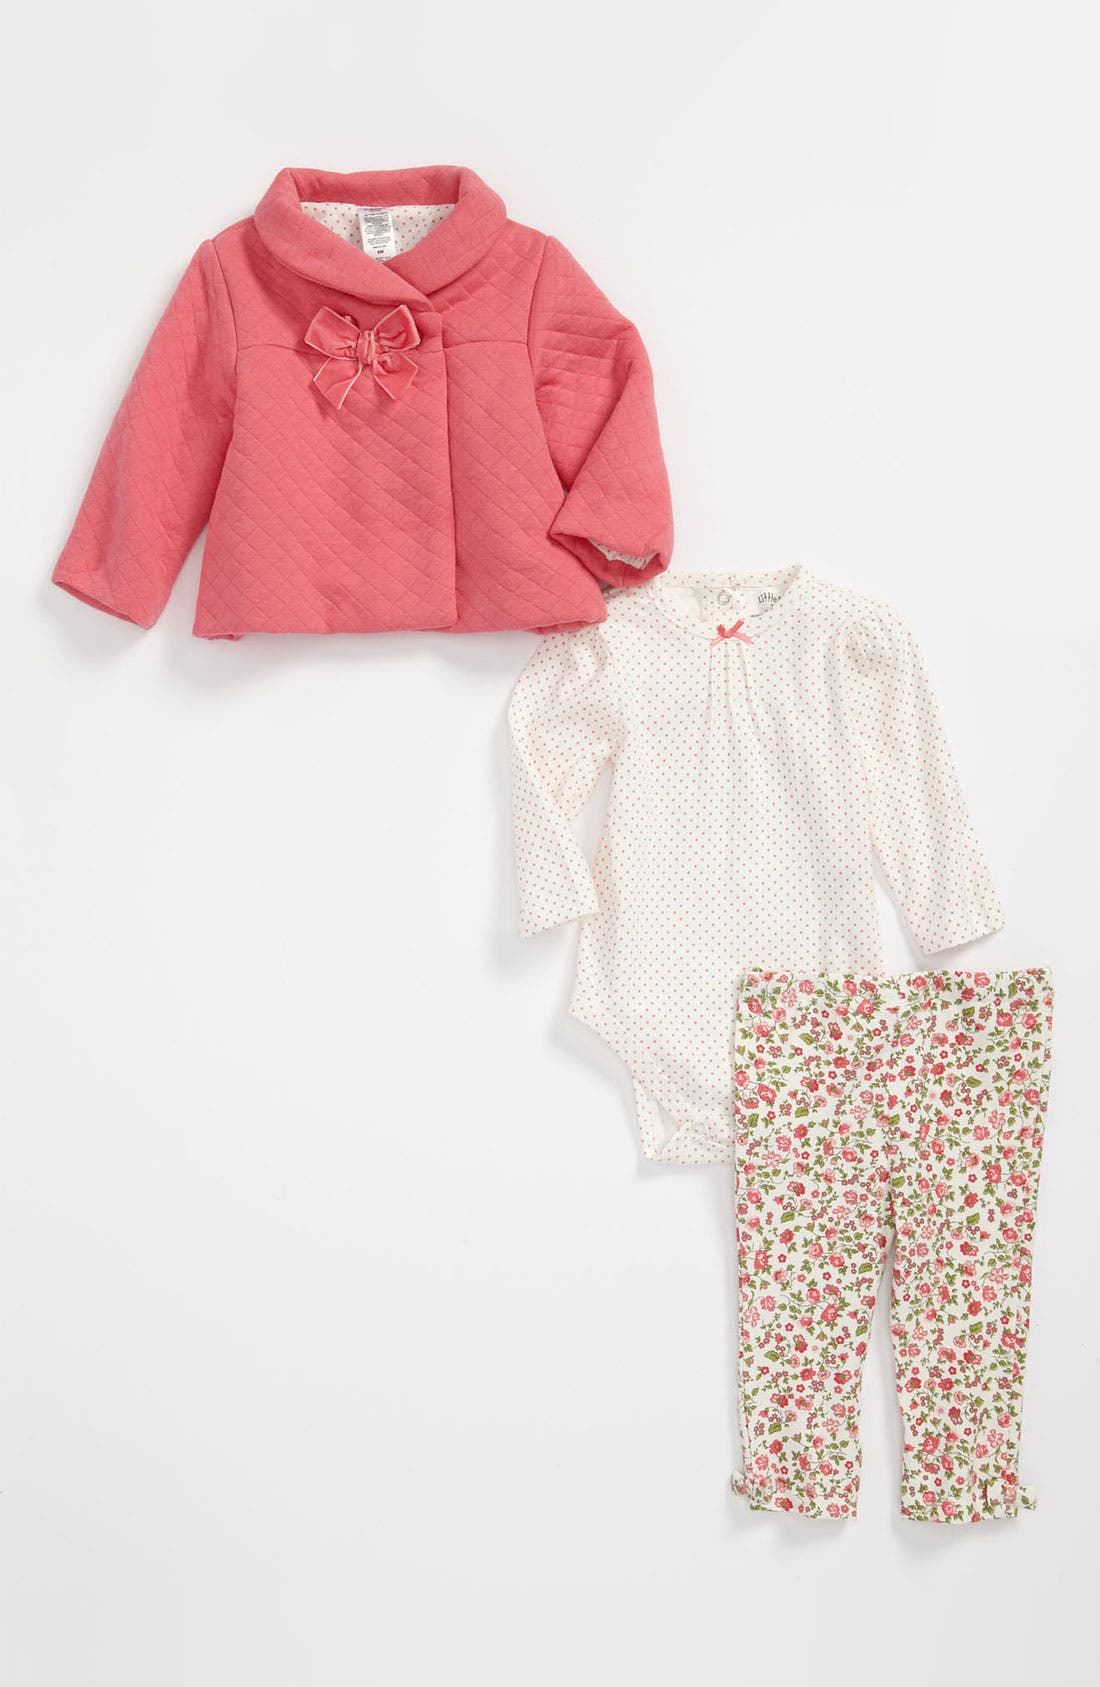 Alternate Image 1 Selected - Little Me 'Pretty Floral' Top, Leggings & Jacket (Infant)